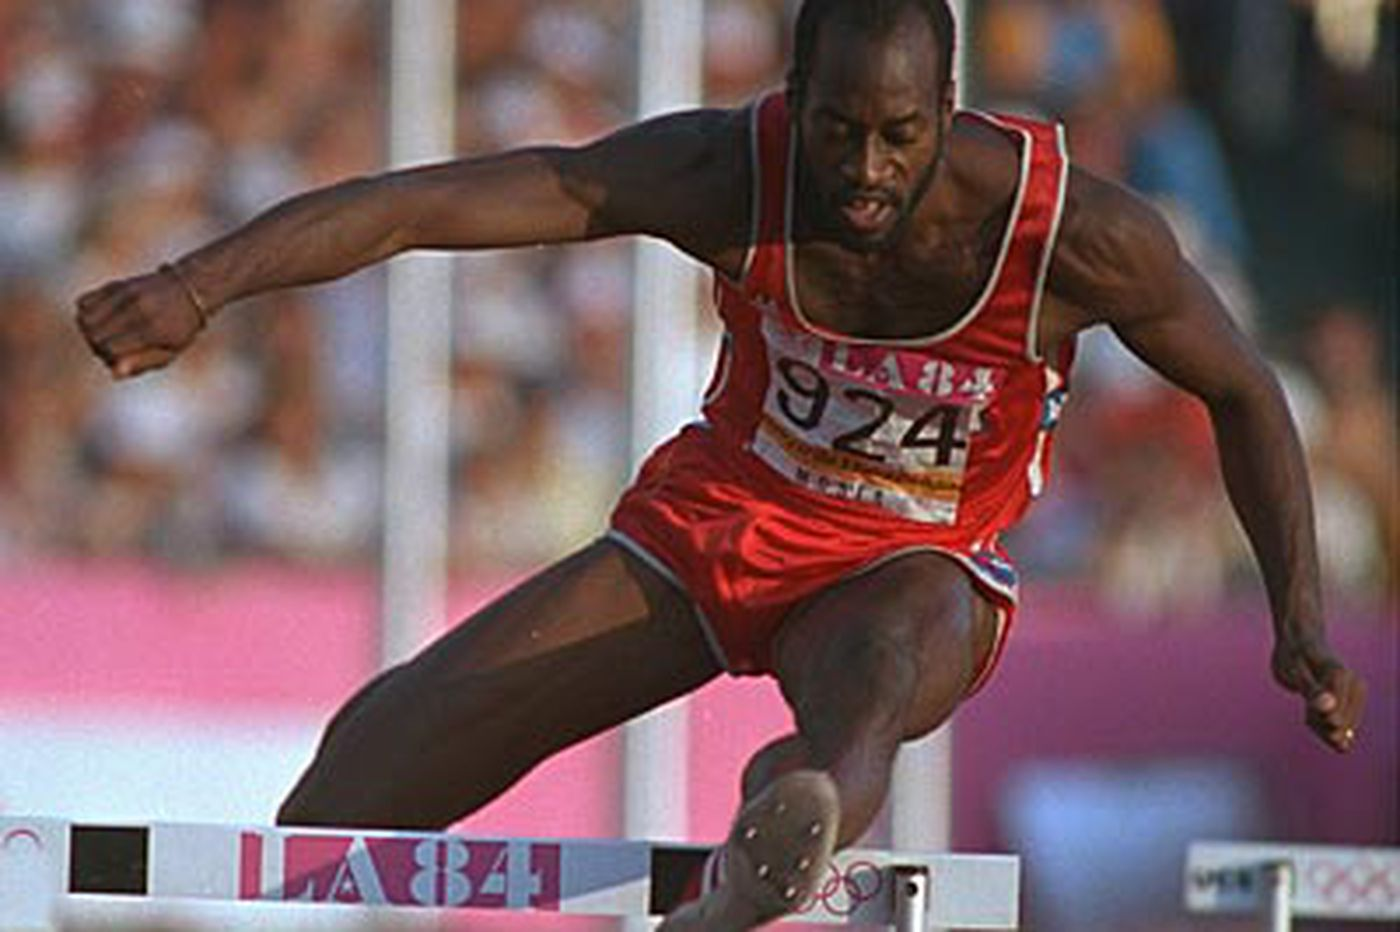 1976 Penn Relays propelled hurdler Moses to Olympic glory